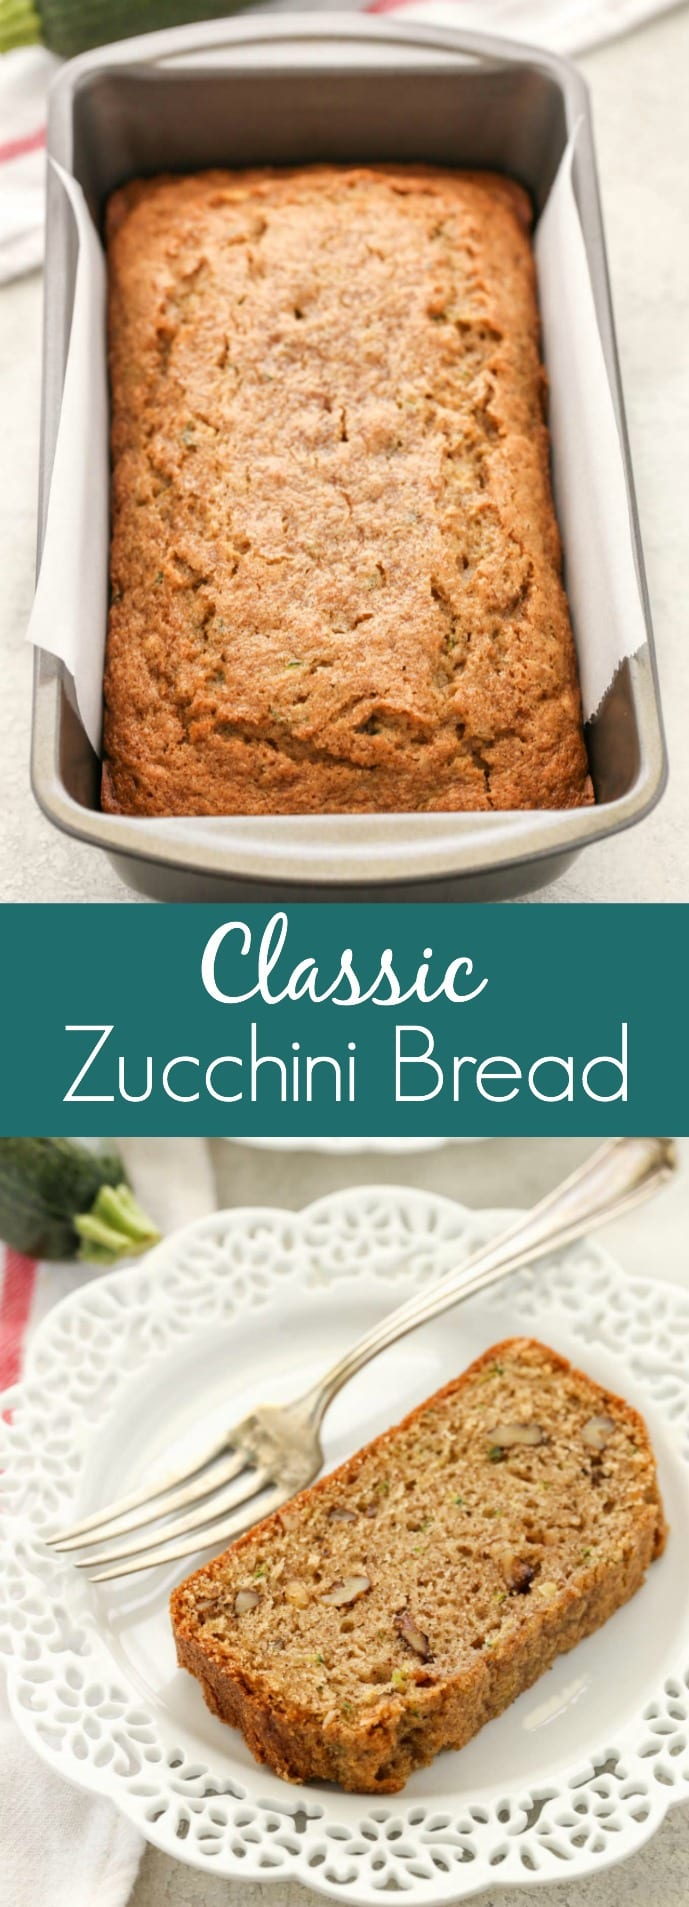 This Classic Zucchini Bread is perfectly sweet, moist, and delicious! Enjoy this bread plain, with chocolate chips, or even chopped walnuts.